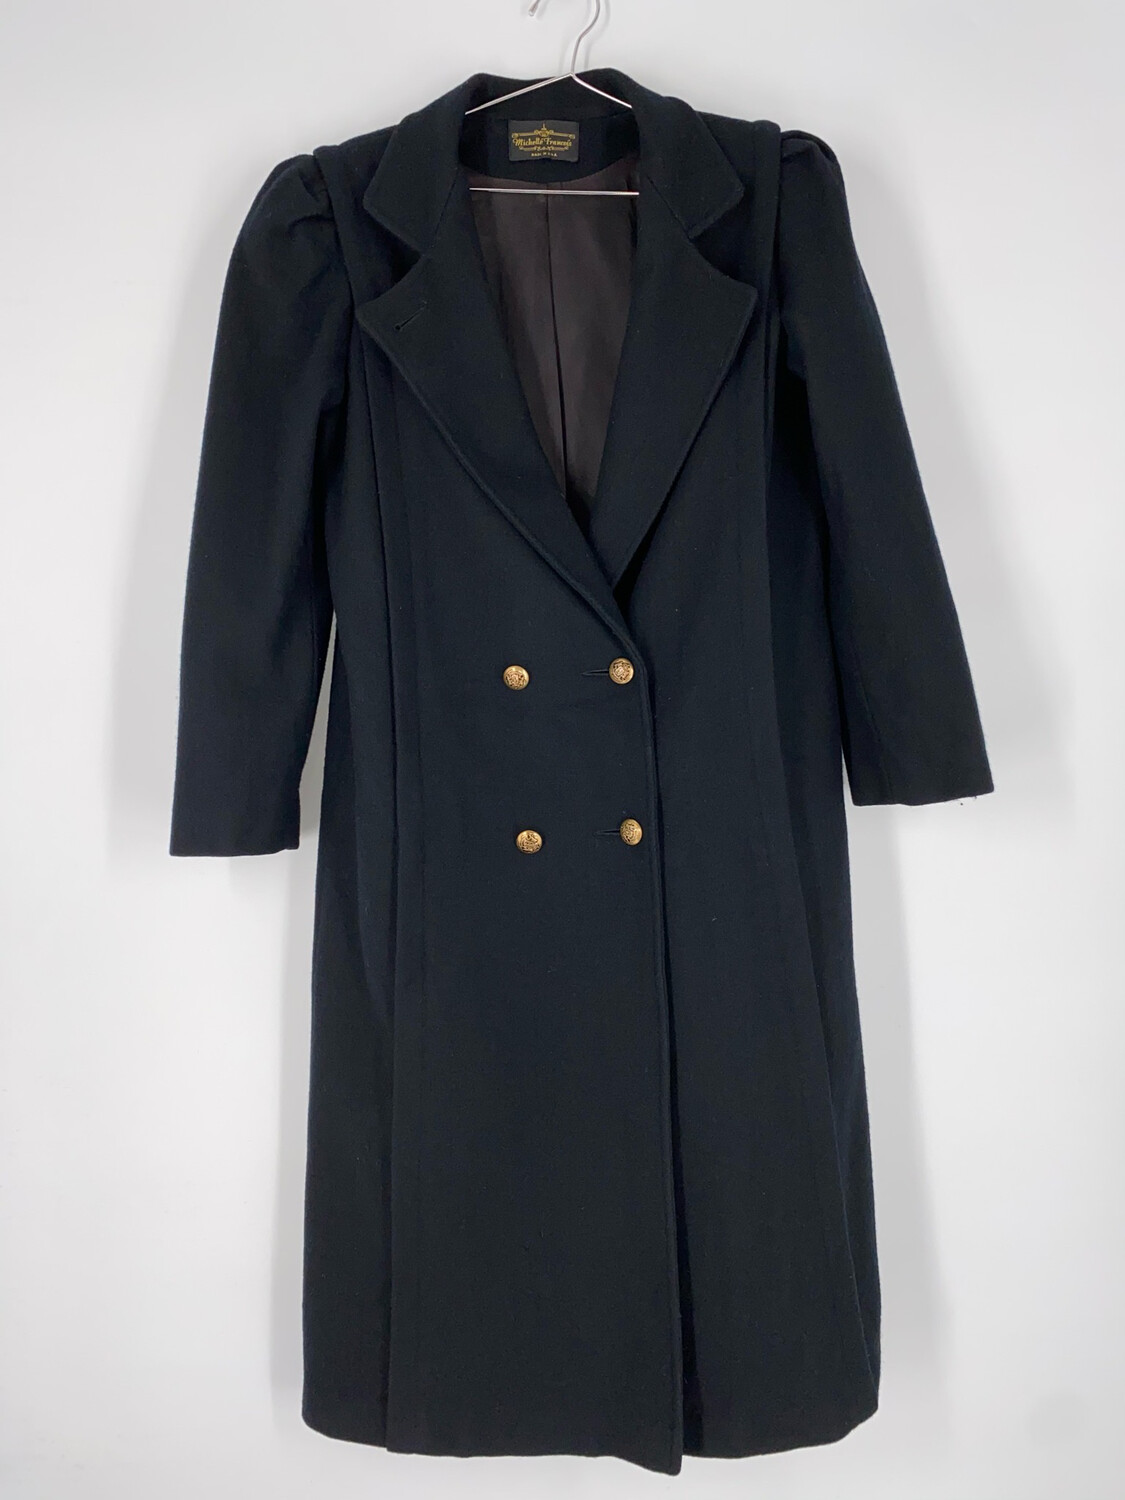 Michelle Francois Black Long Wool Coat With Gold Buttons Size M